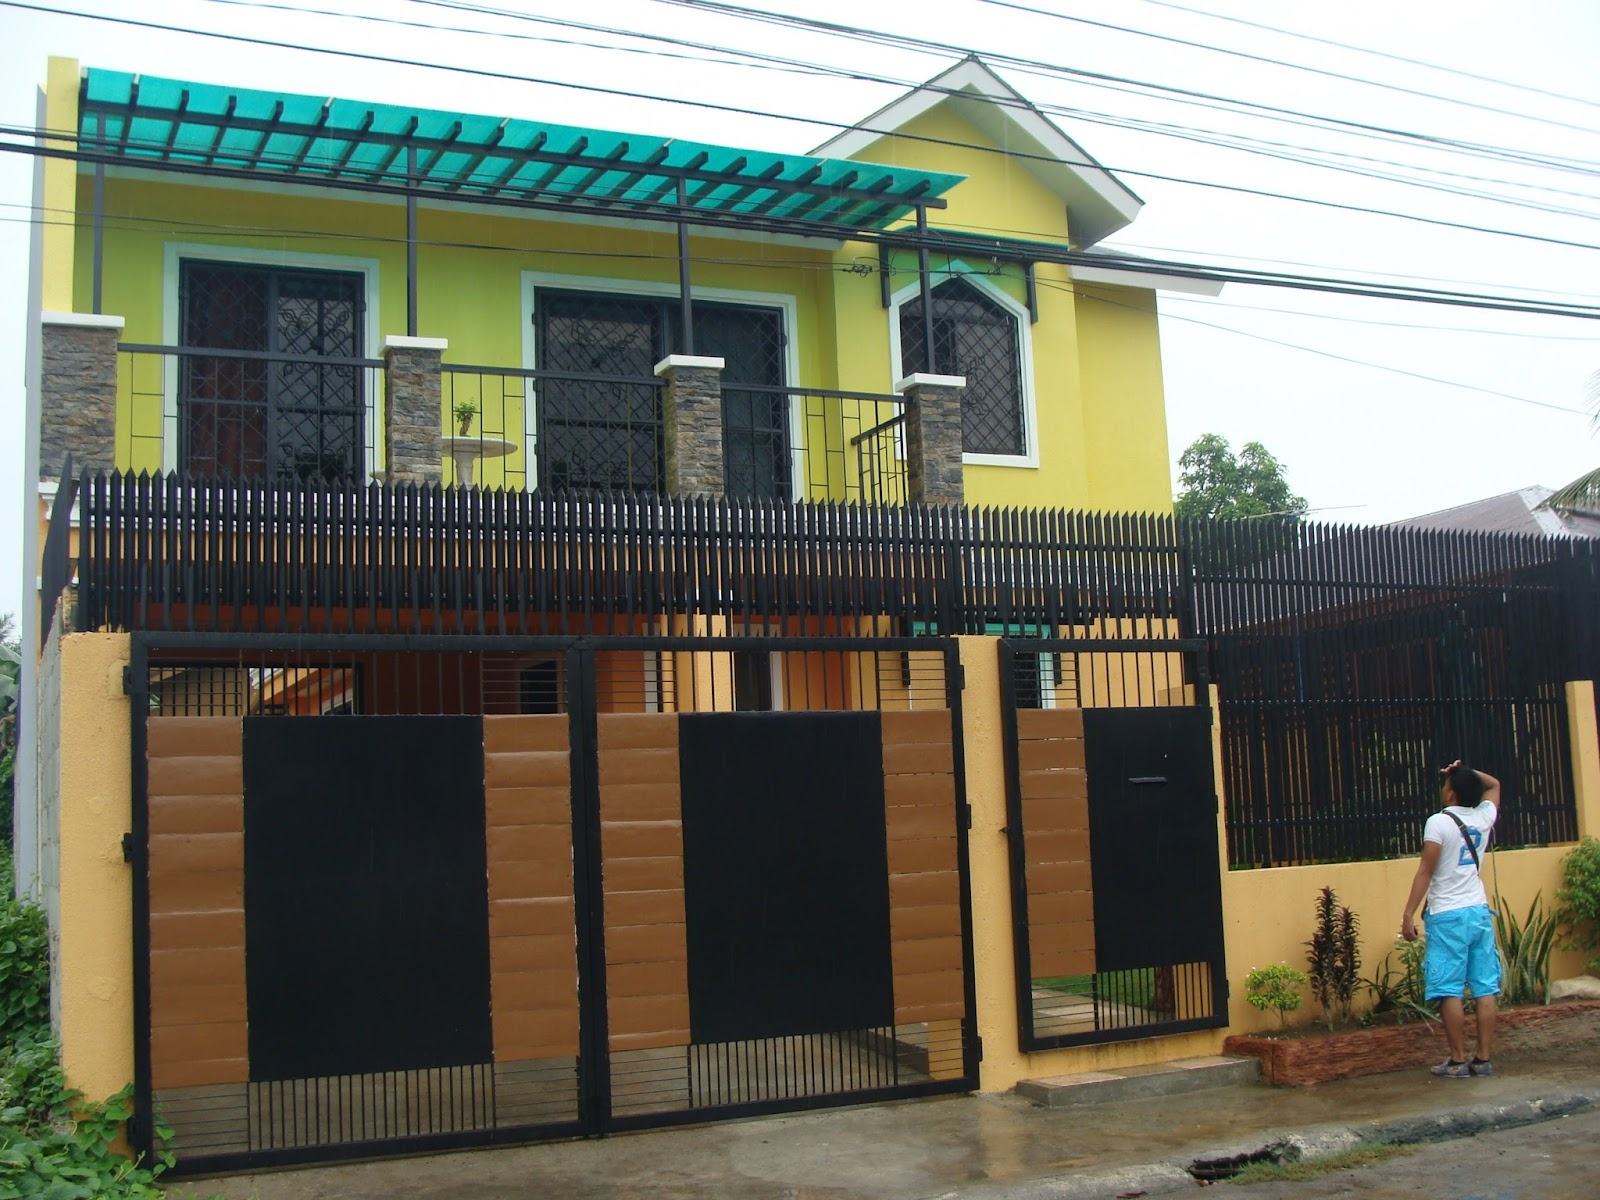 house designs two storey house design philippines 2 story house design house designs two storey house design philippines 2 story house design philippines modern houses latest